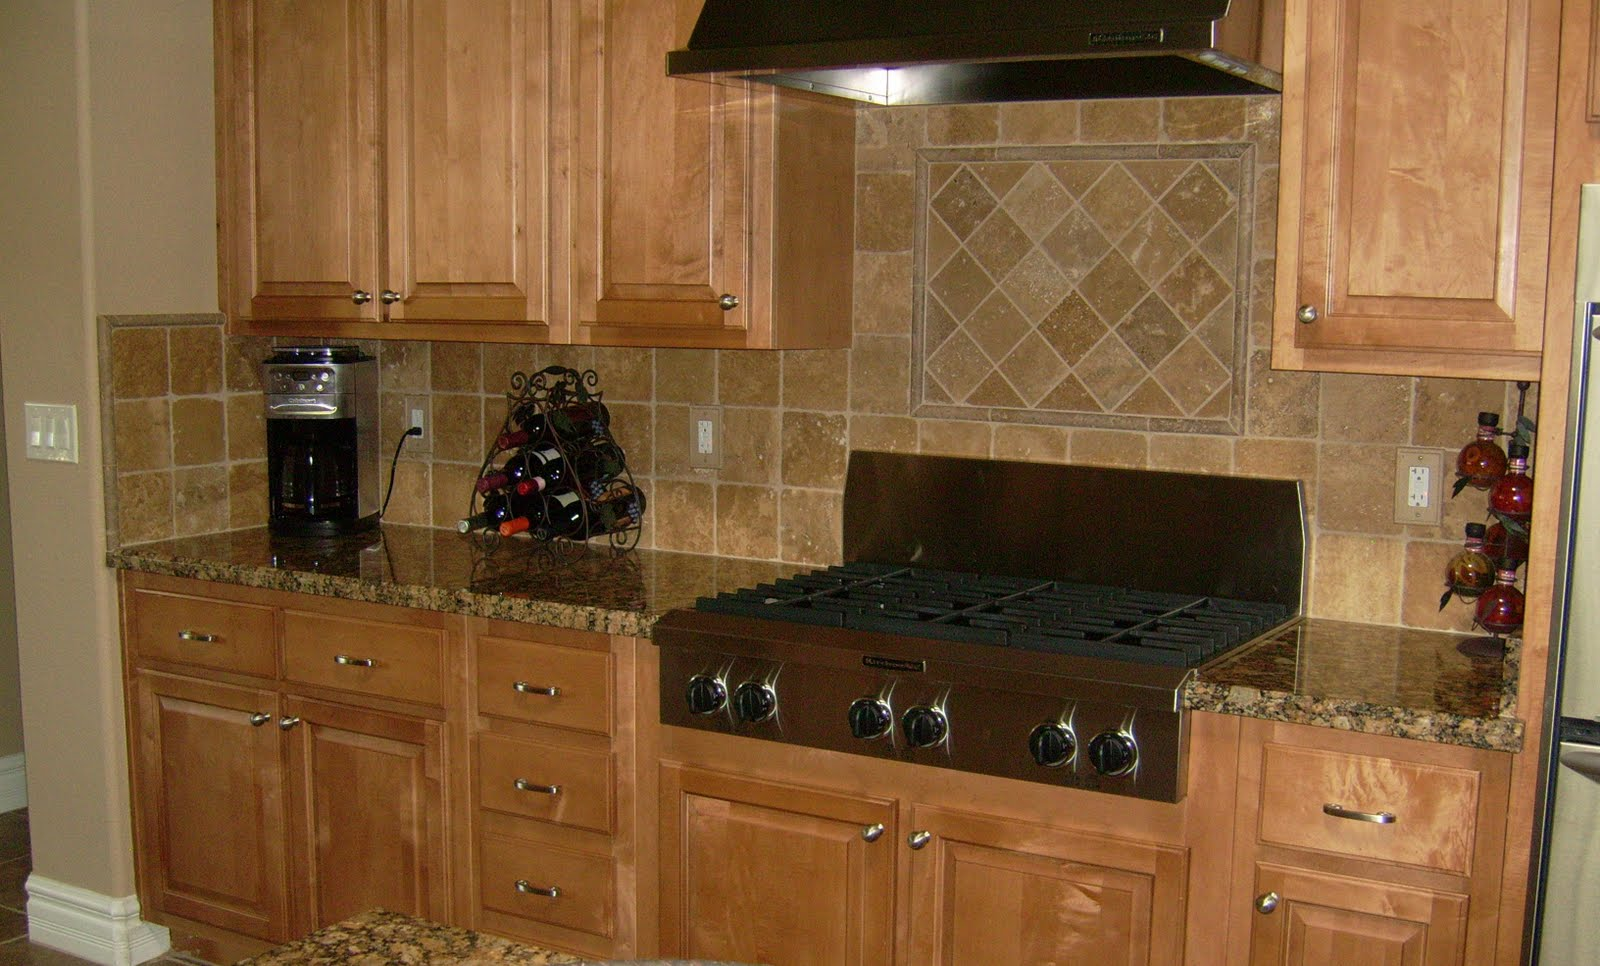 pictures kitchen backsplash ideas 6x6 tumbled stone kitchen backsplash